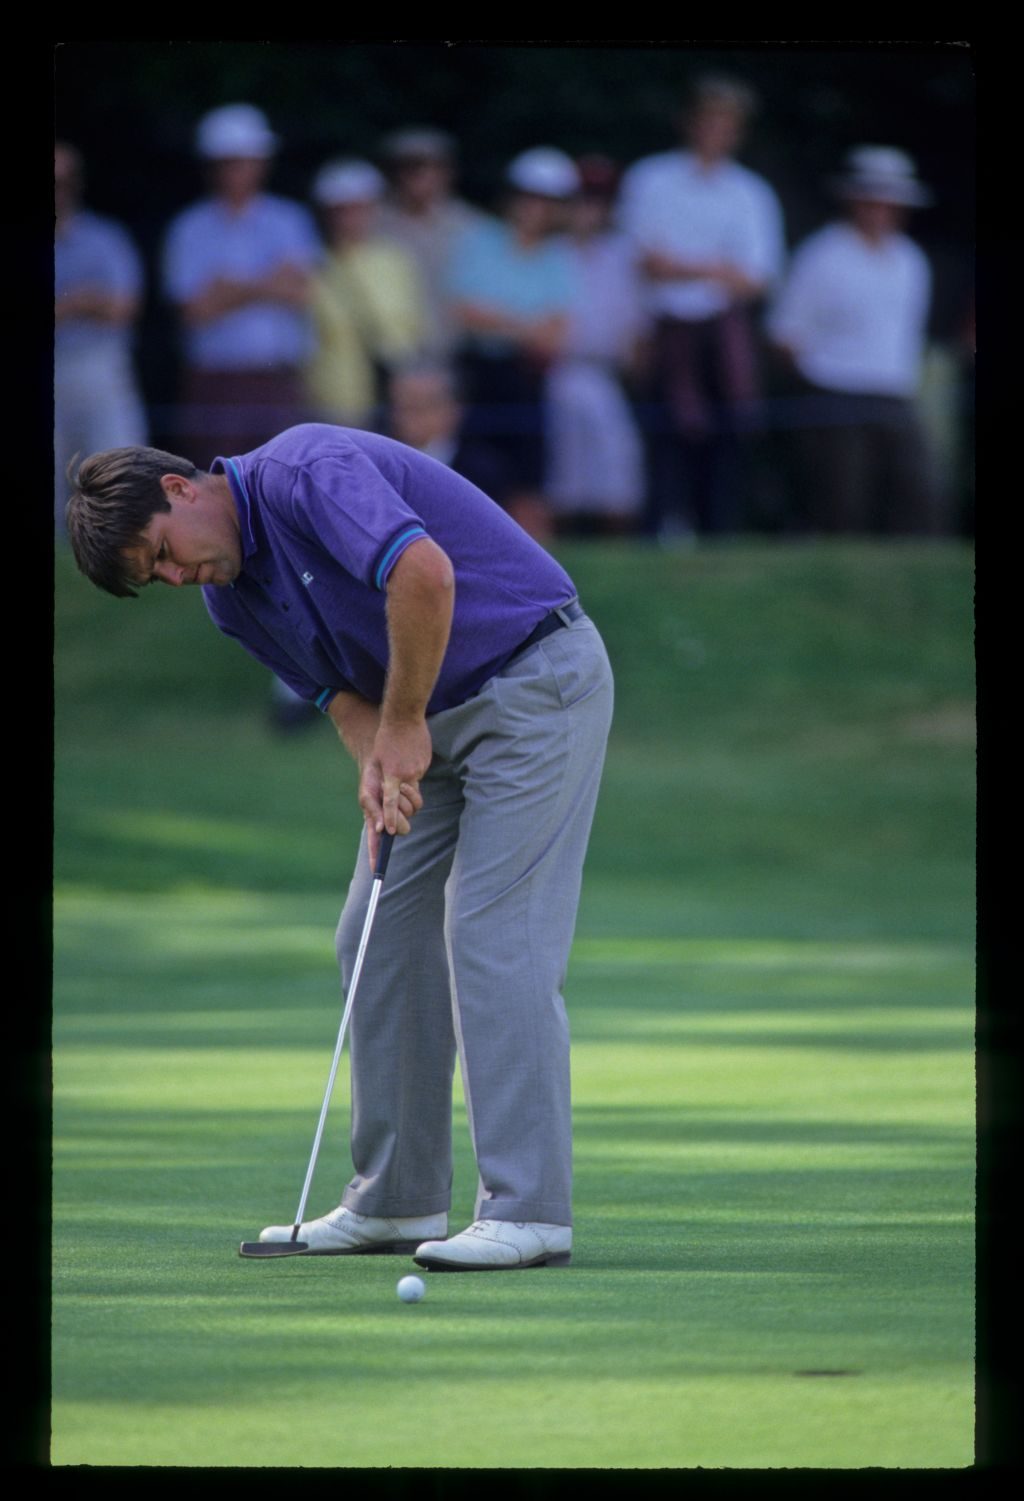 Steven Richardson putting during the 1992 Volvo PGA